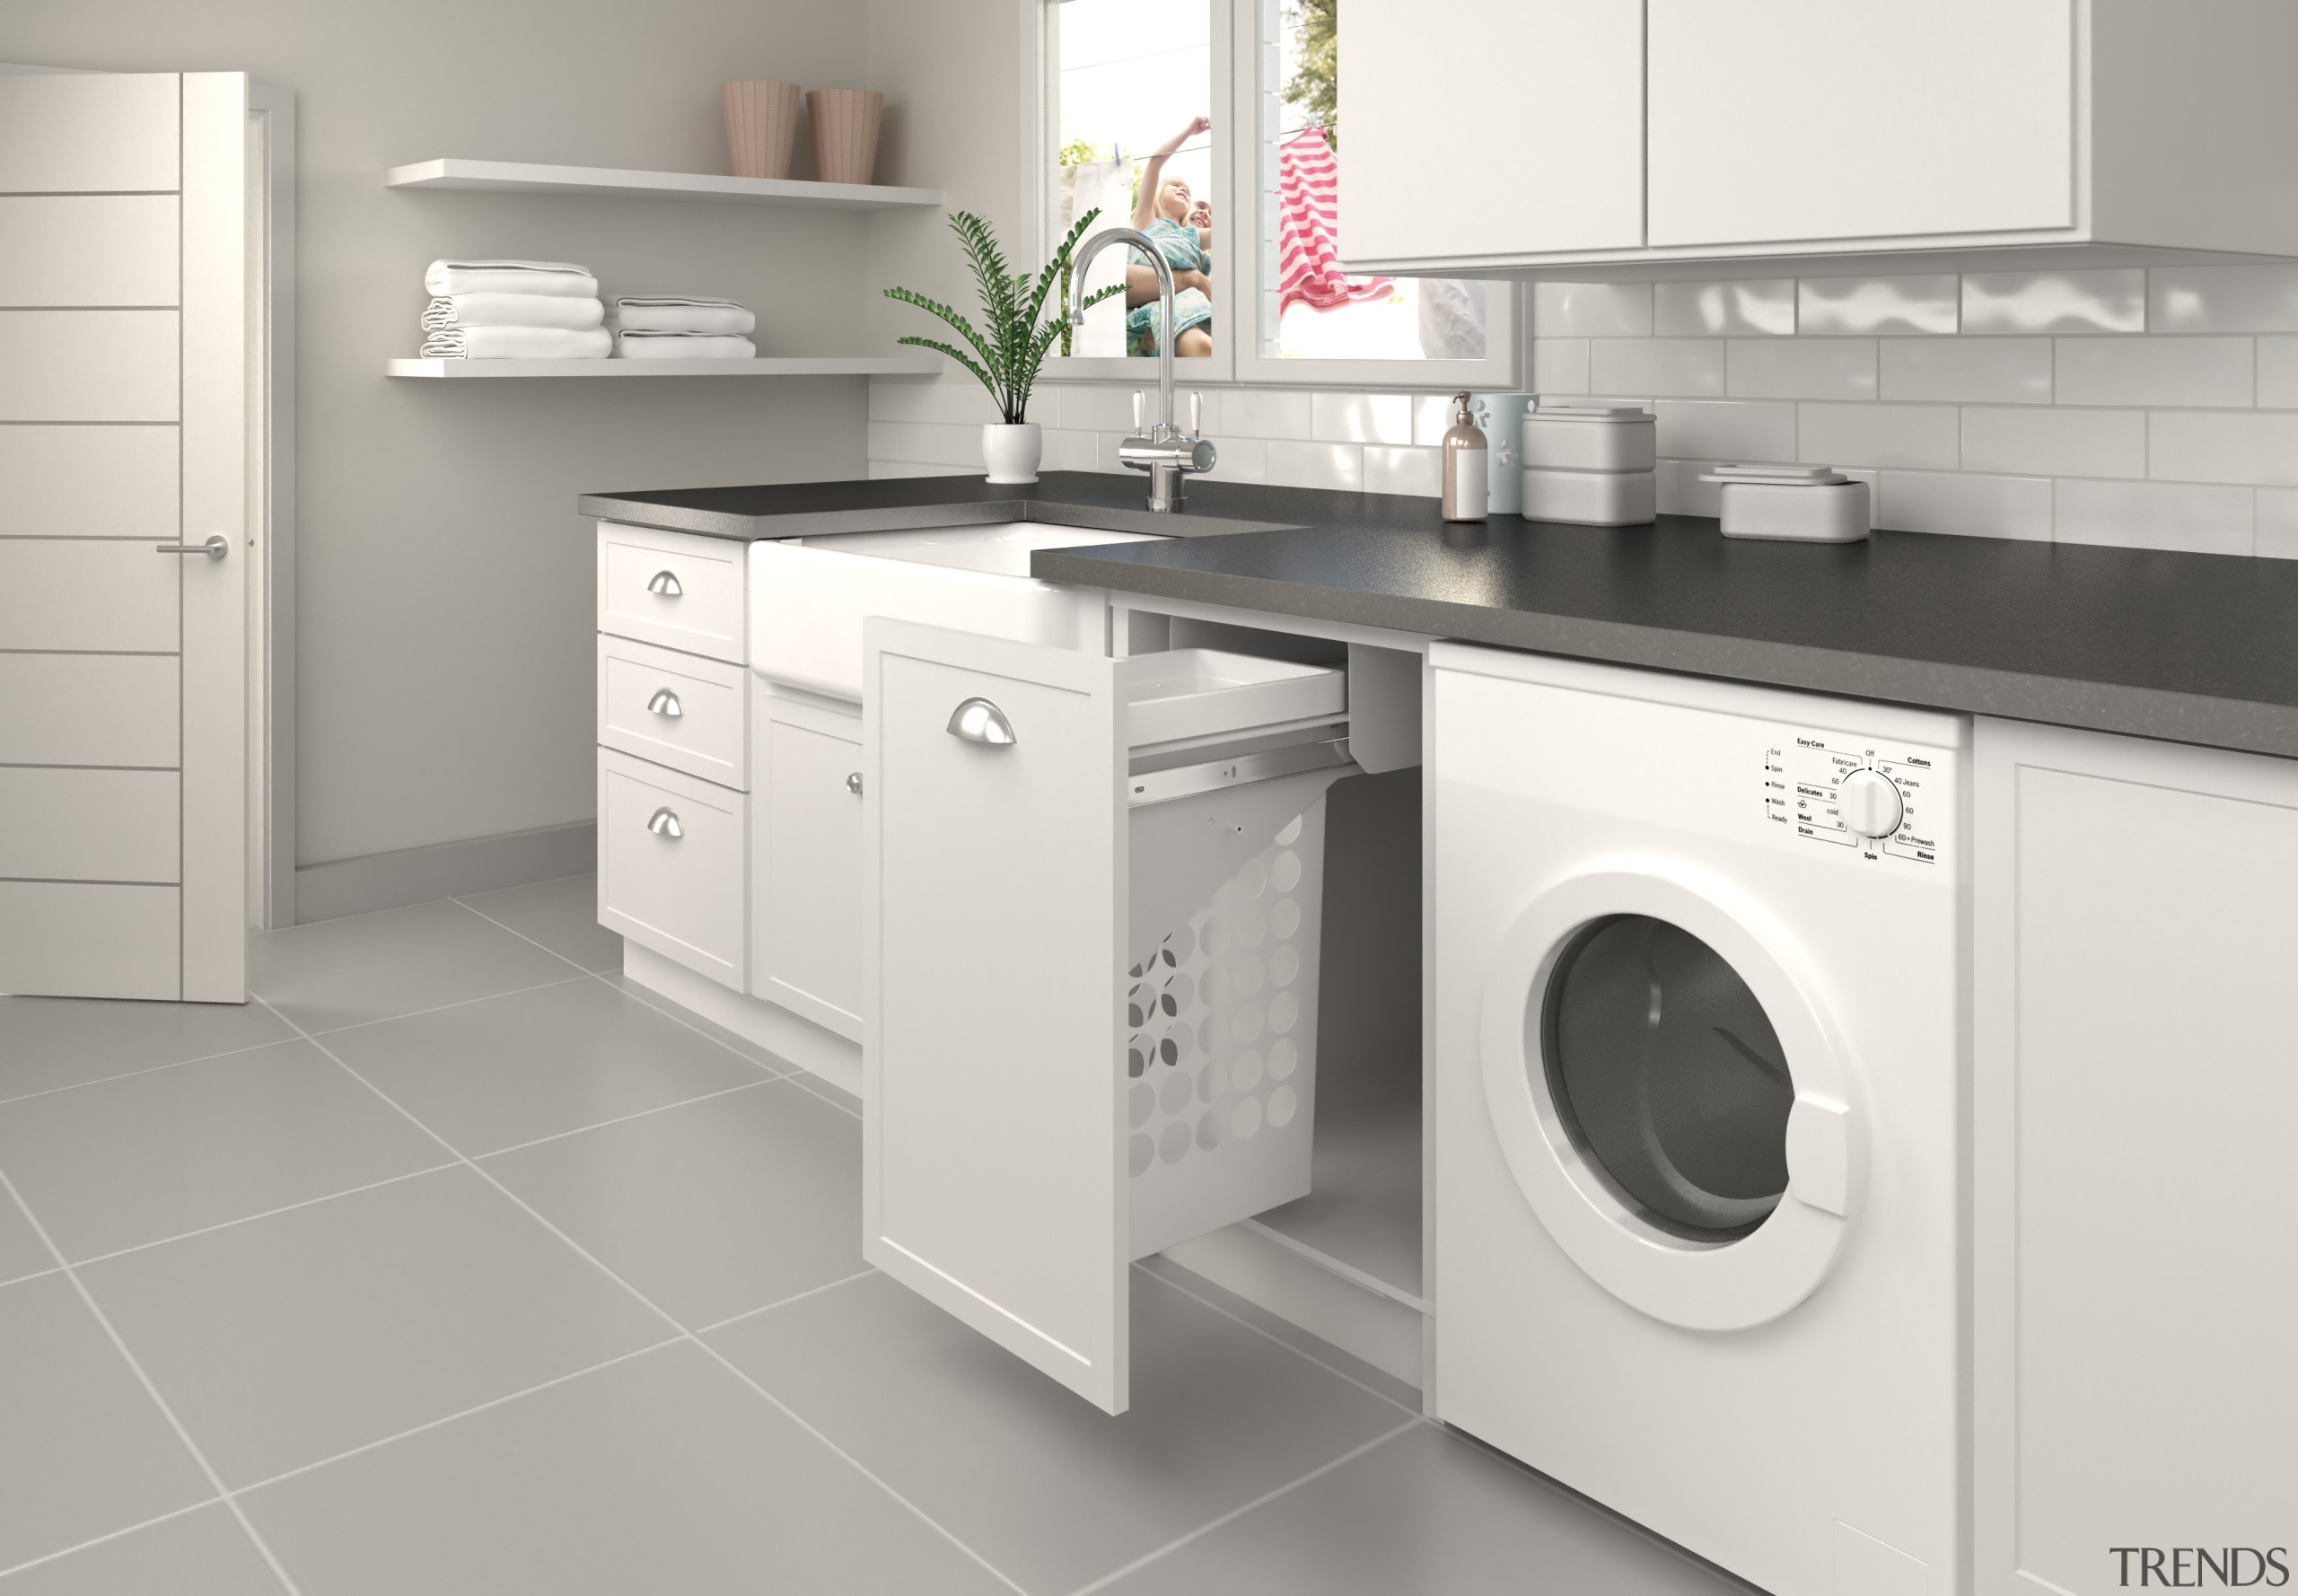 Tanova laundry solutions are offered in a variety clothes dryer, countertop, cuisine classique, floor, home appliance, kitchen, kitchen stove, laundry, laundry room, major appliance, product, product design, room, washing machine, gray